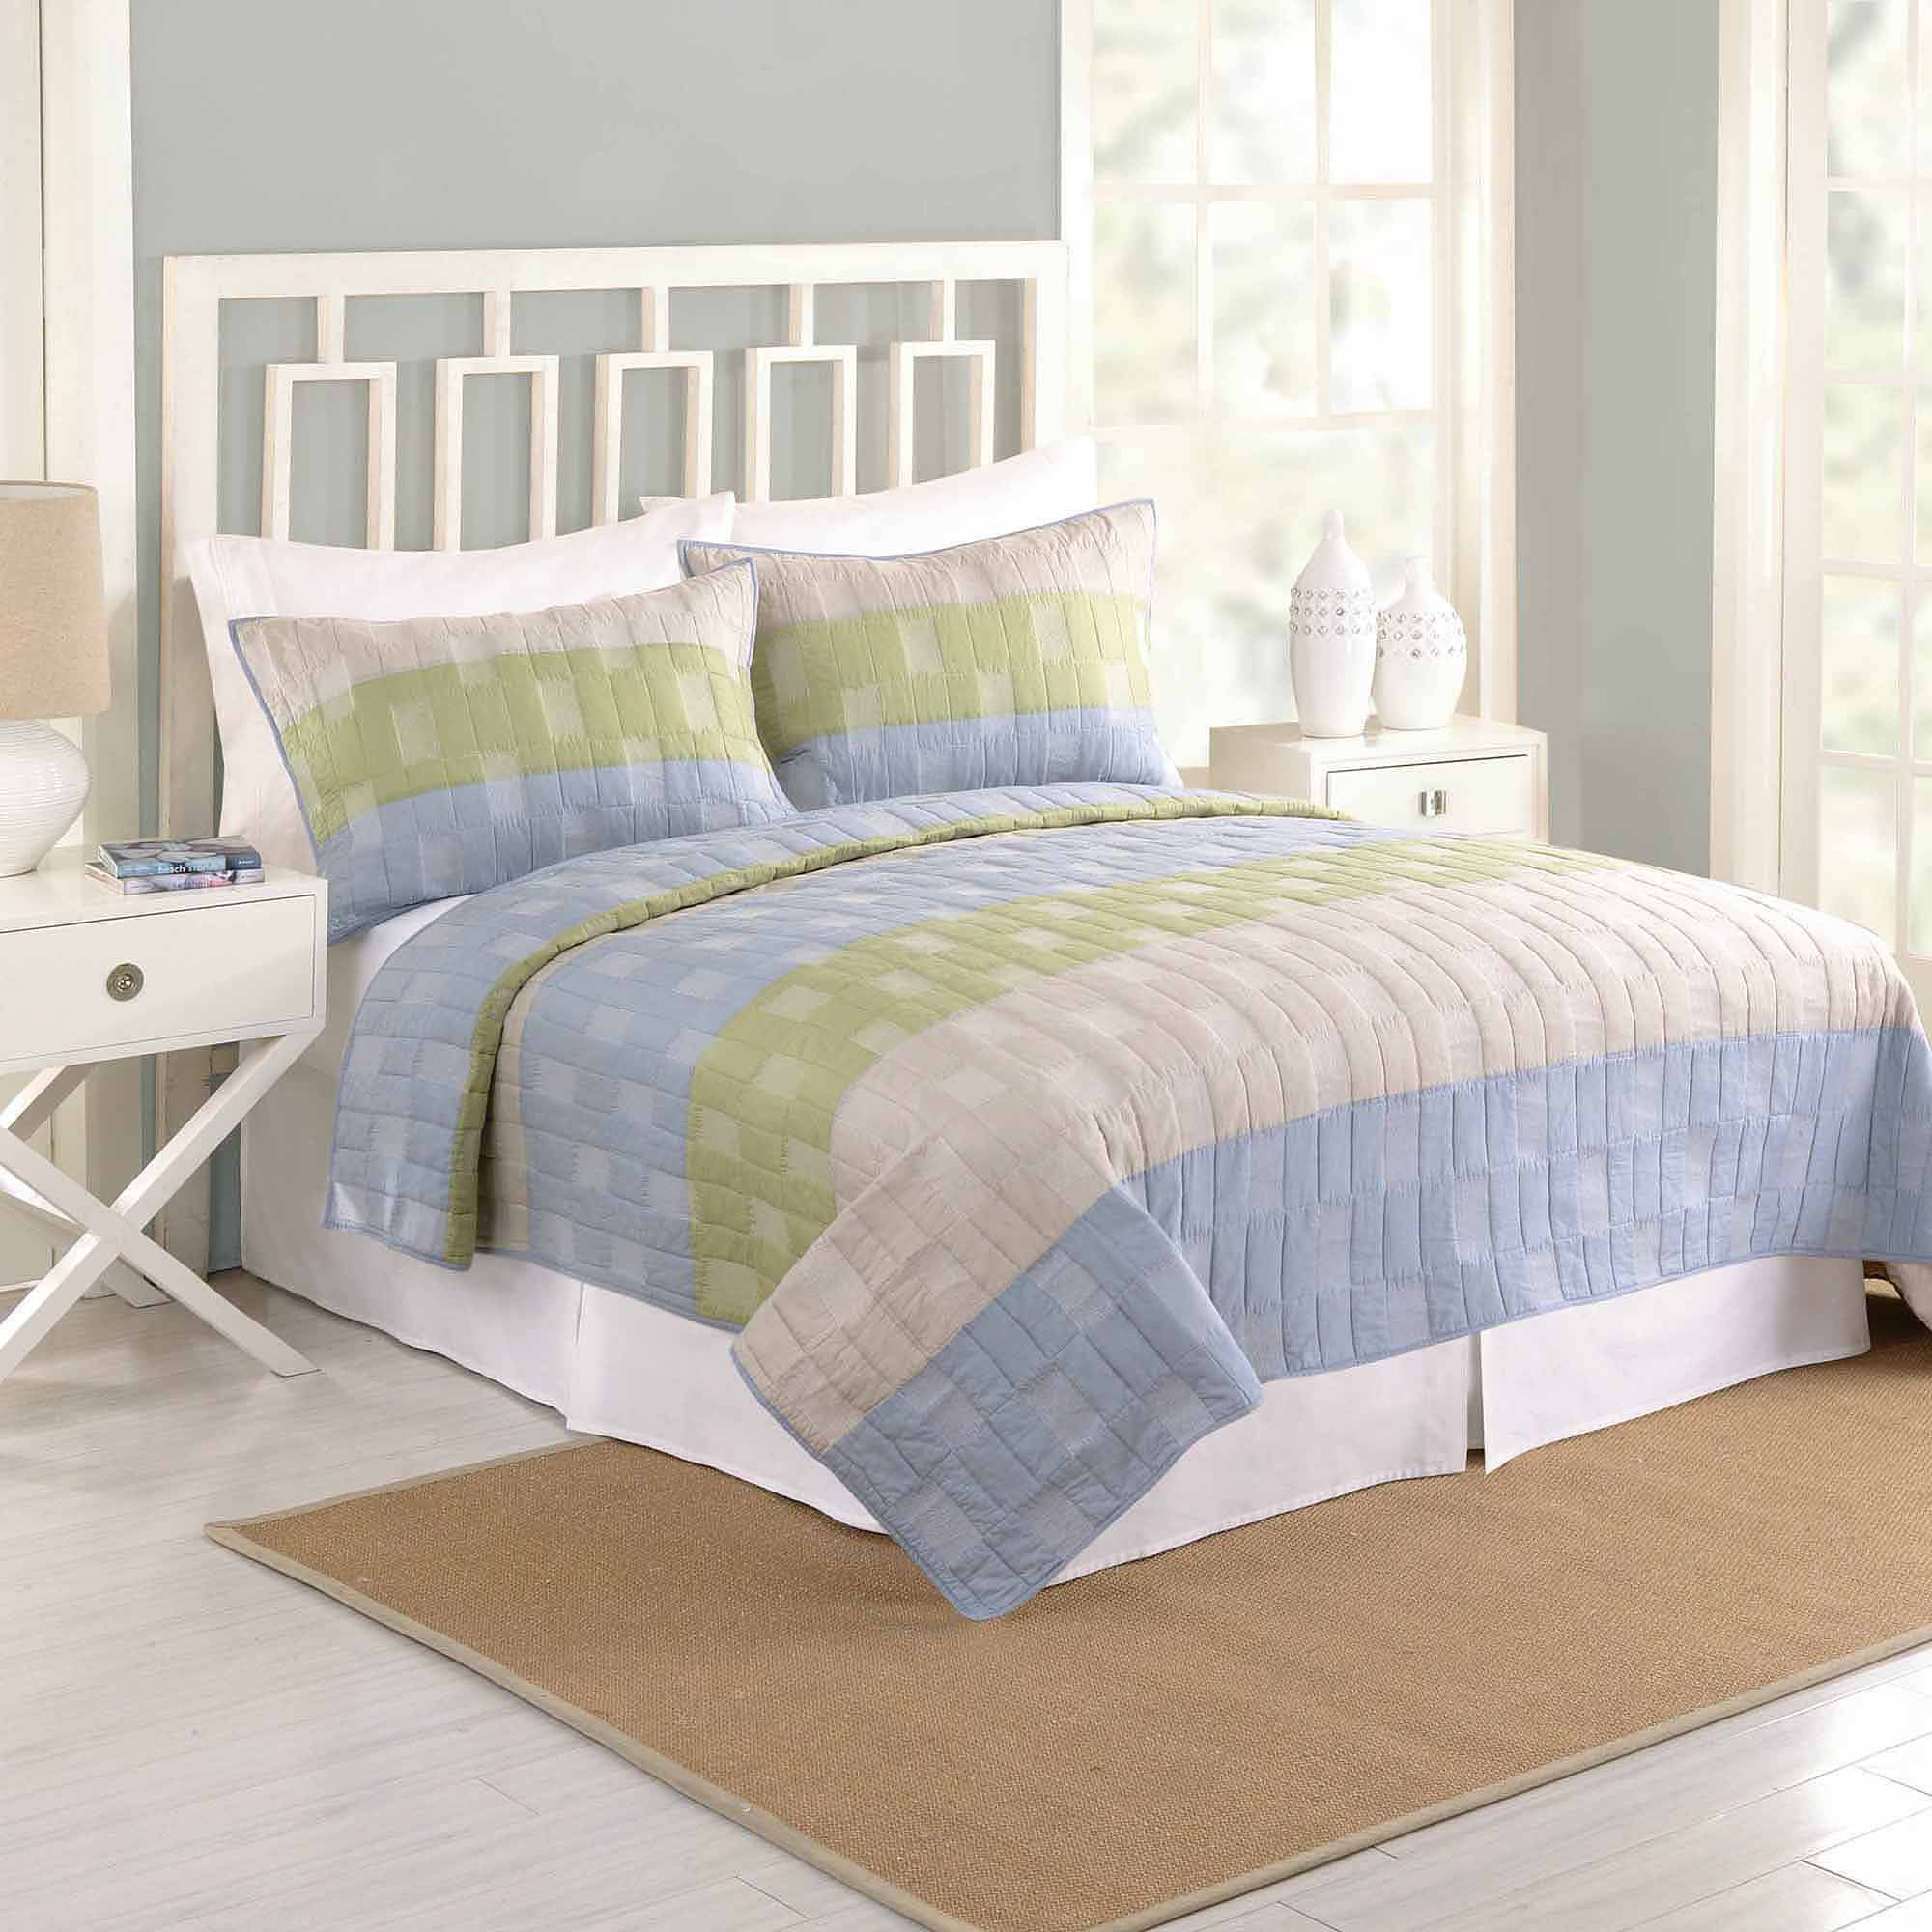 Better Homes and Gardens Oliver Bedding Quilt by KRISS